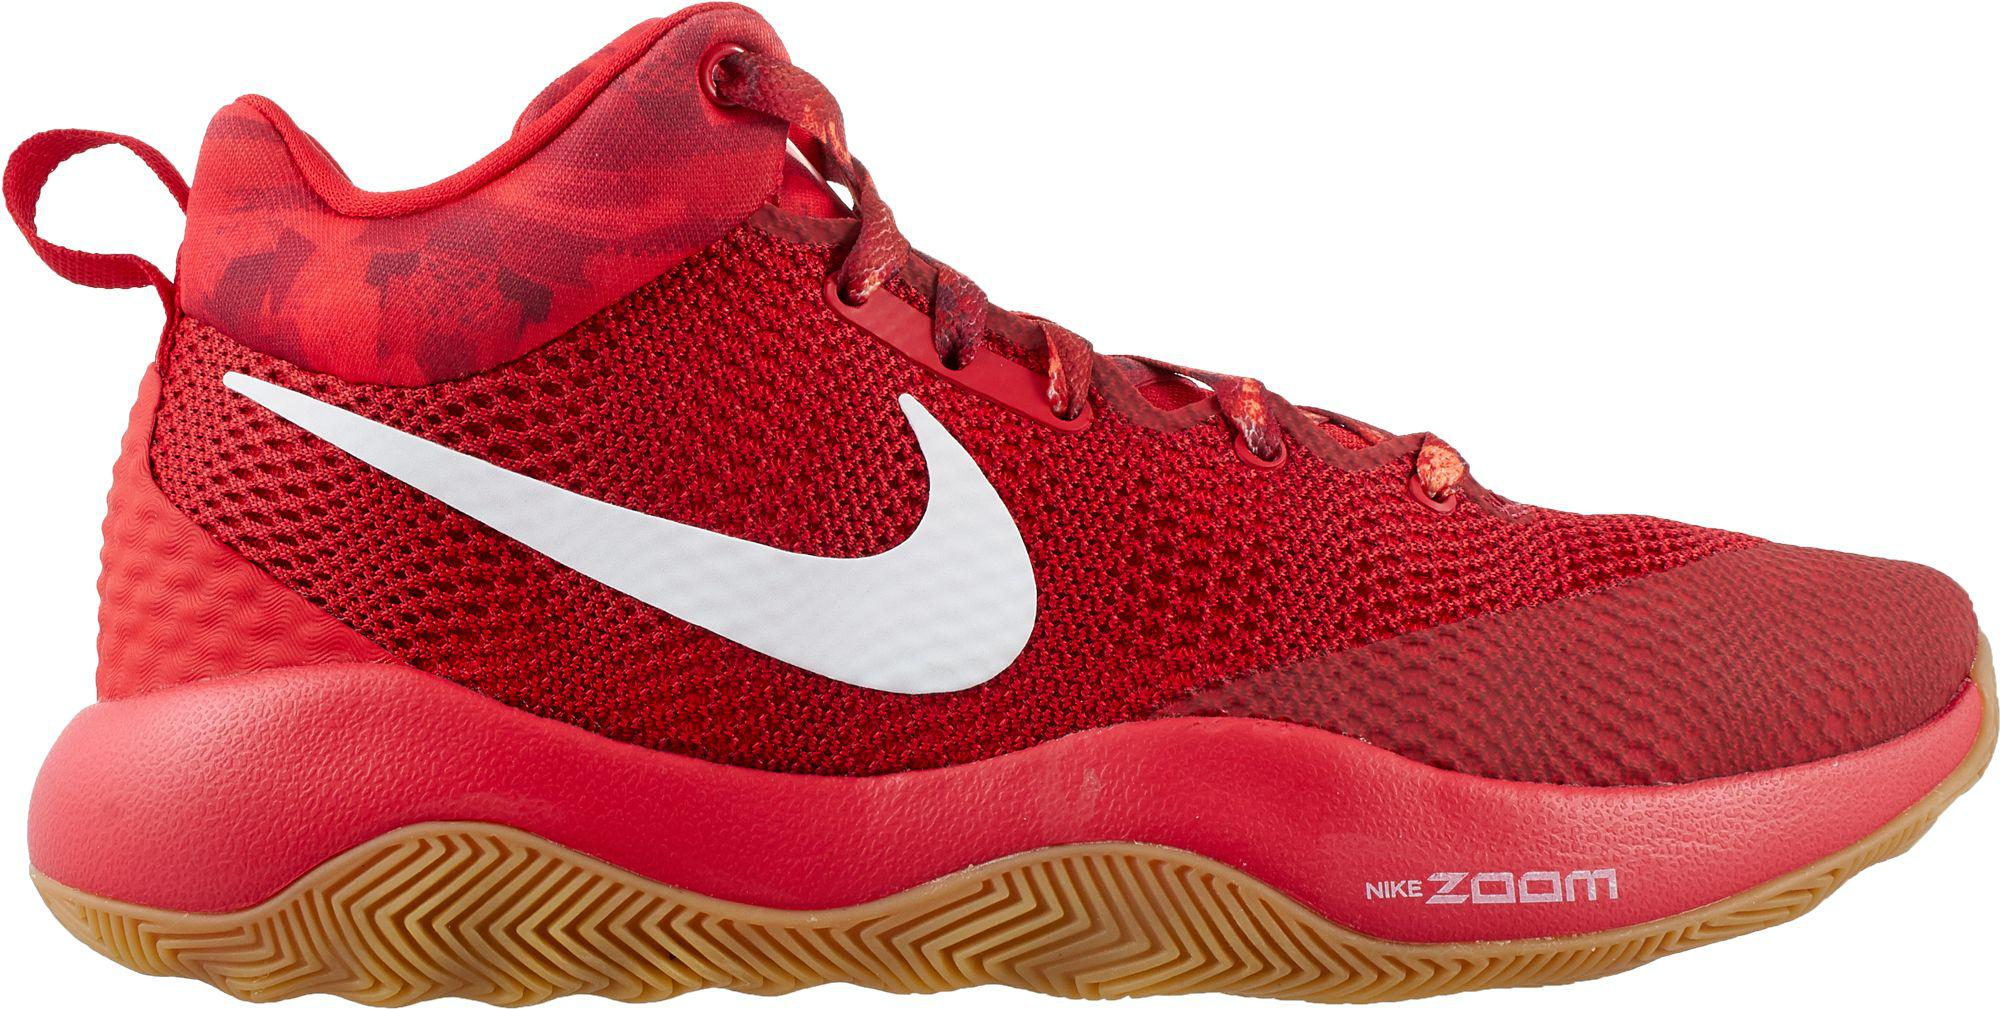 073f95a336b6 Lyst - Nike Zoom Rev 2017 Basketball Shoes in Red for Men